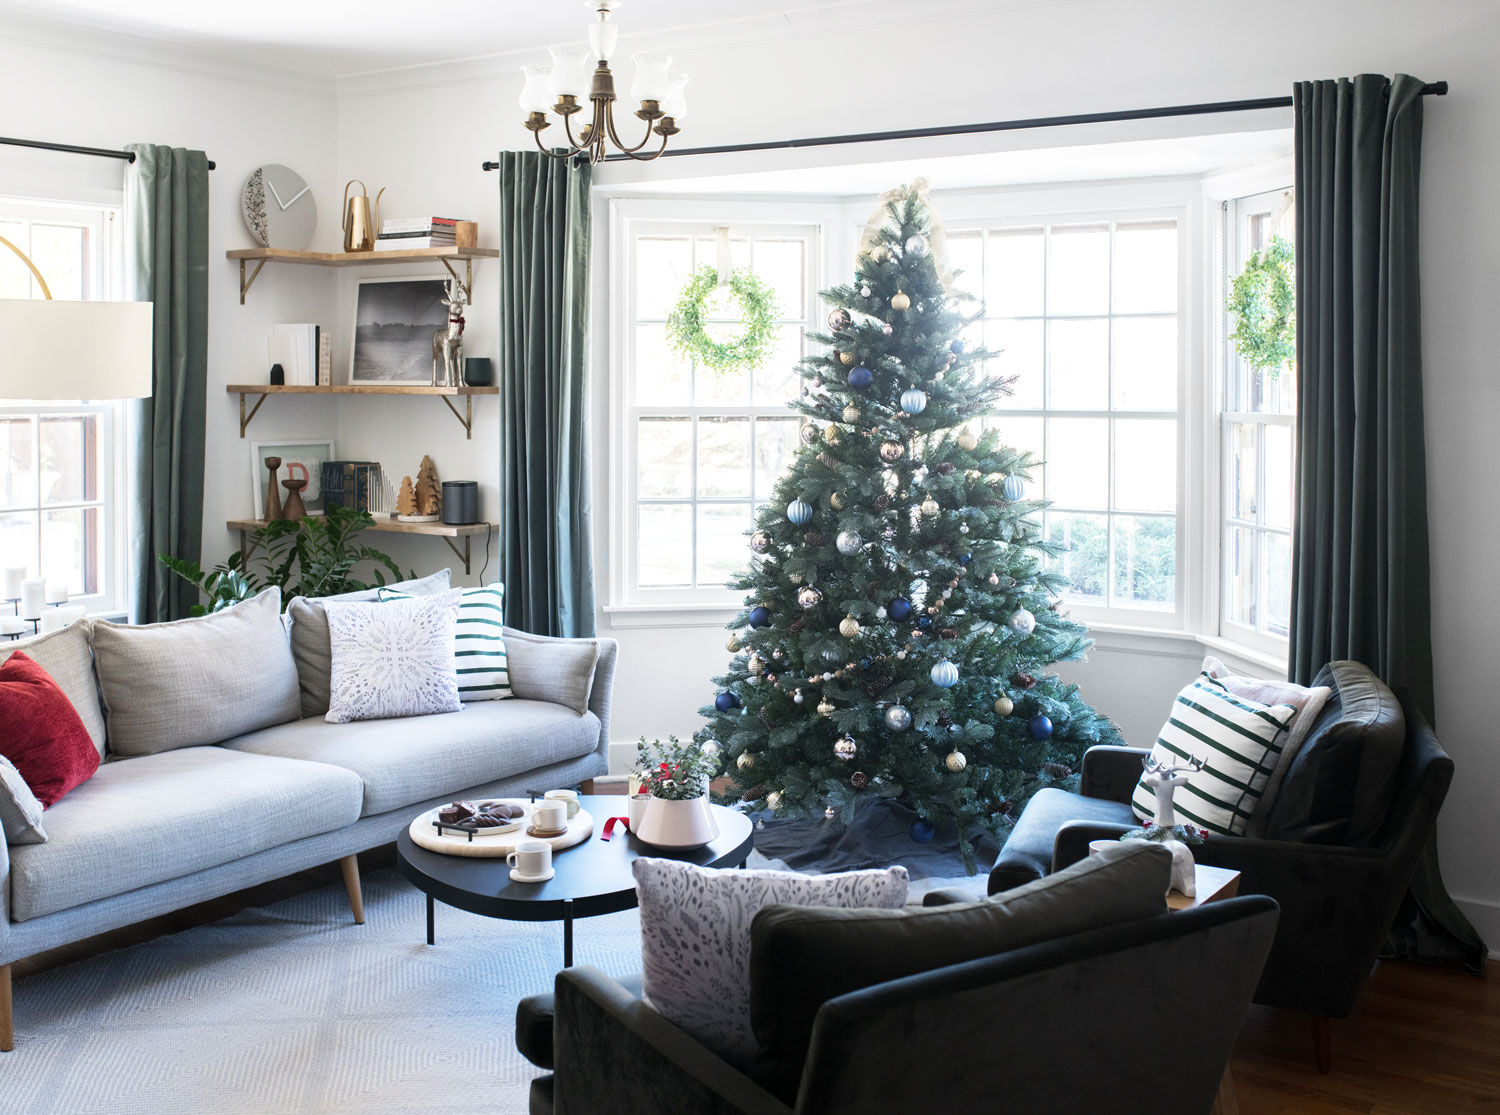 The living room looks so cheery and ready for the holidays.